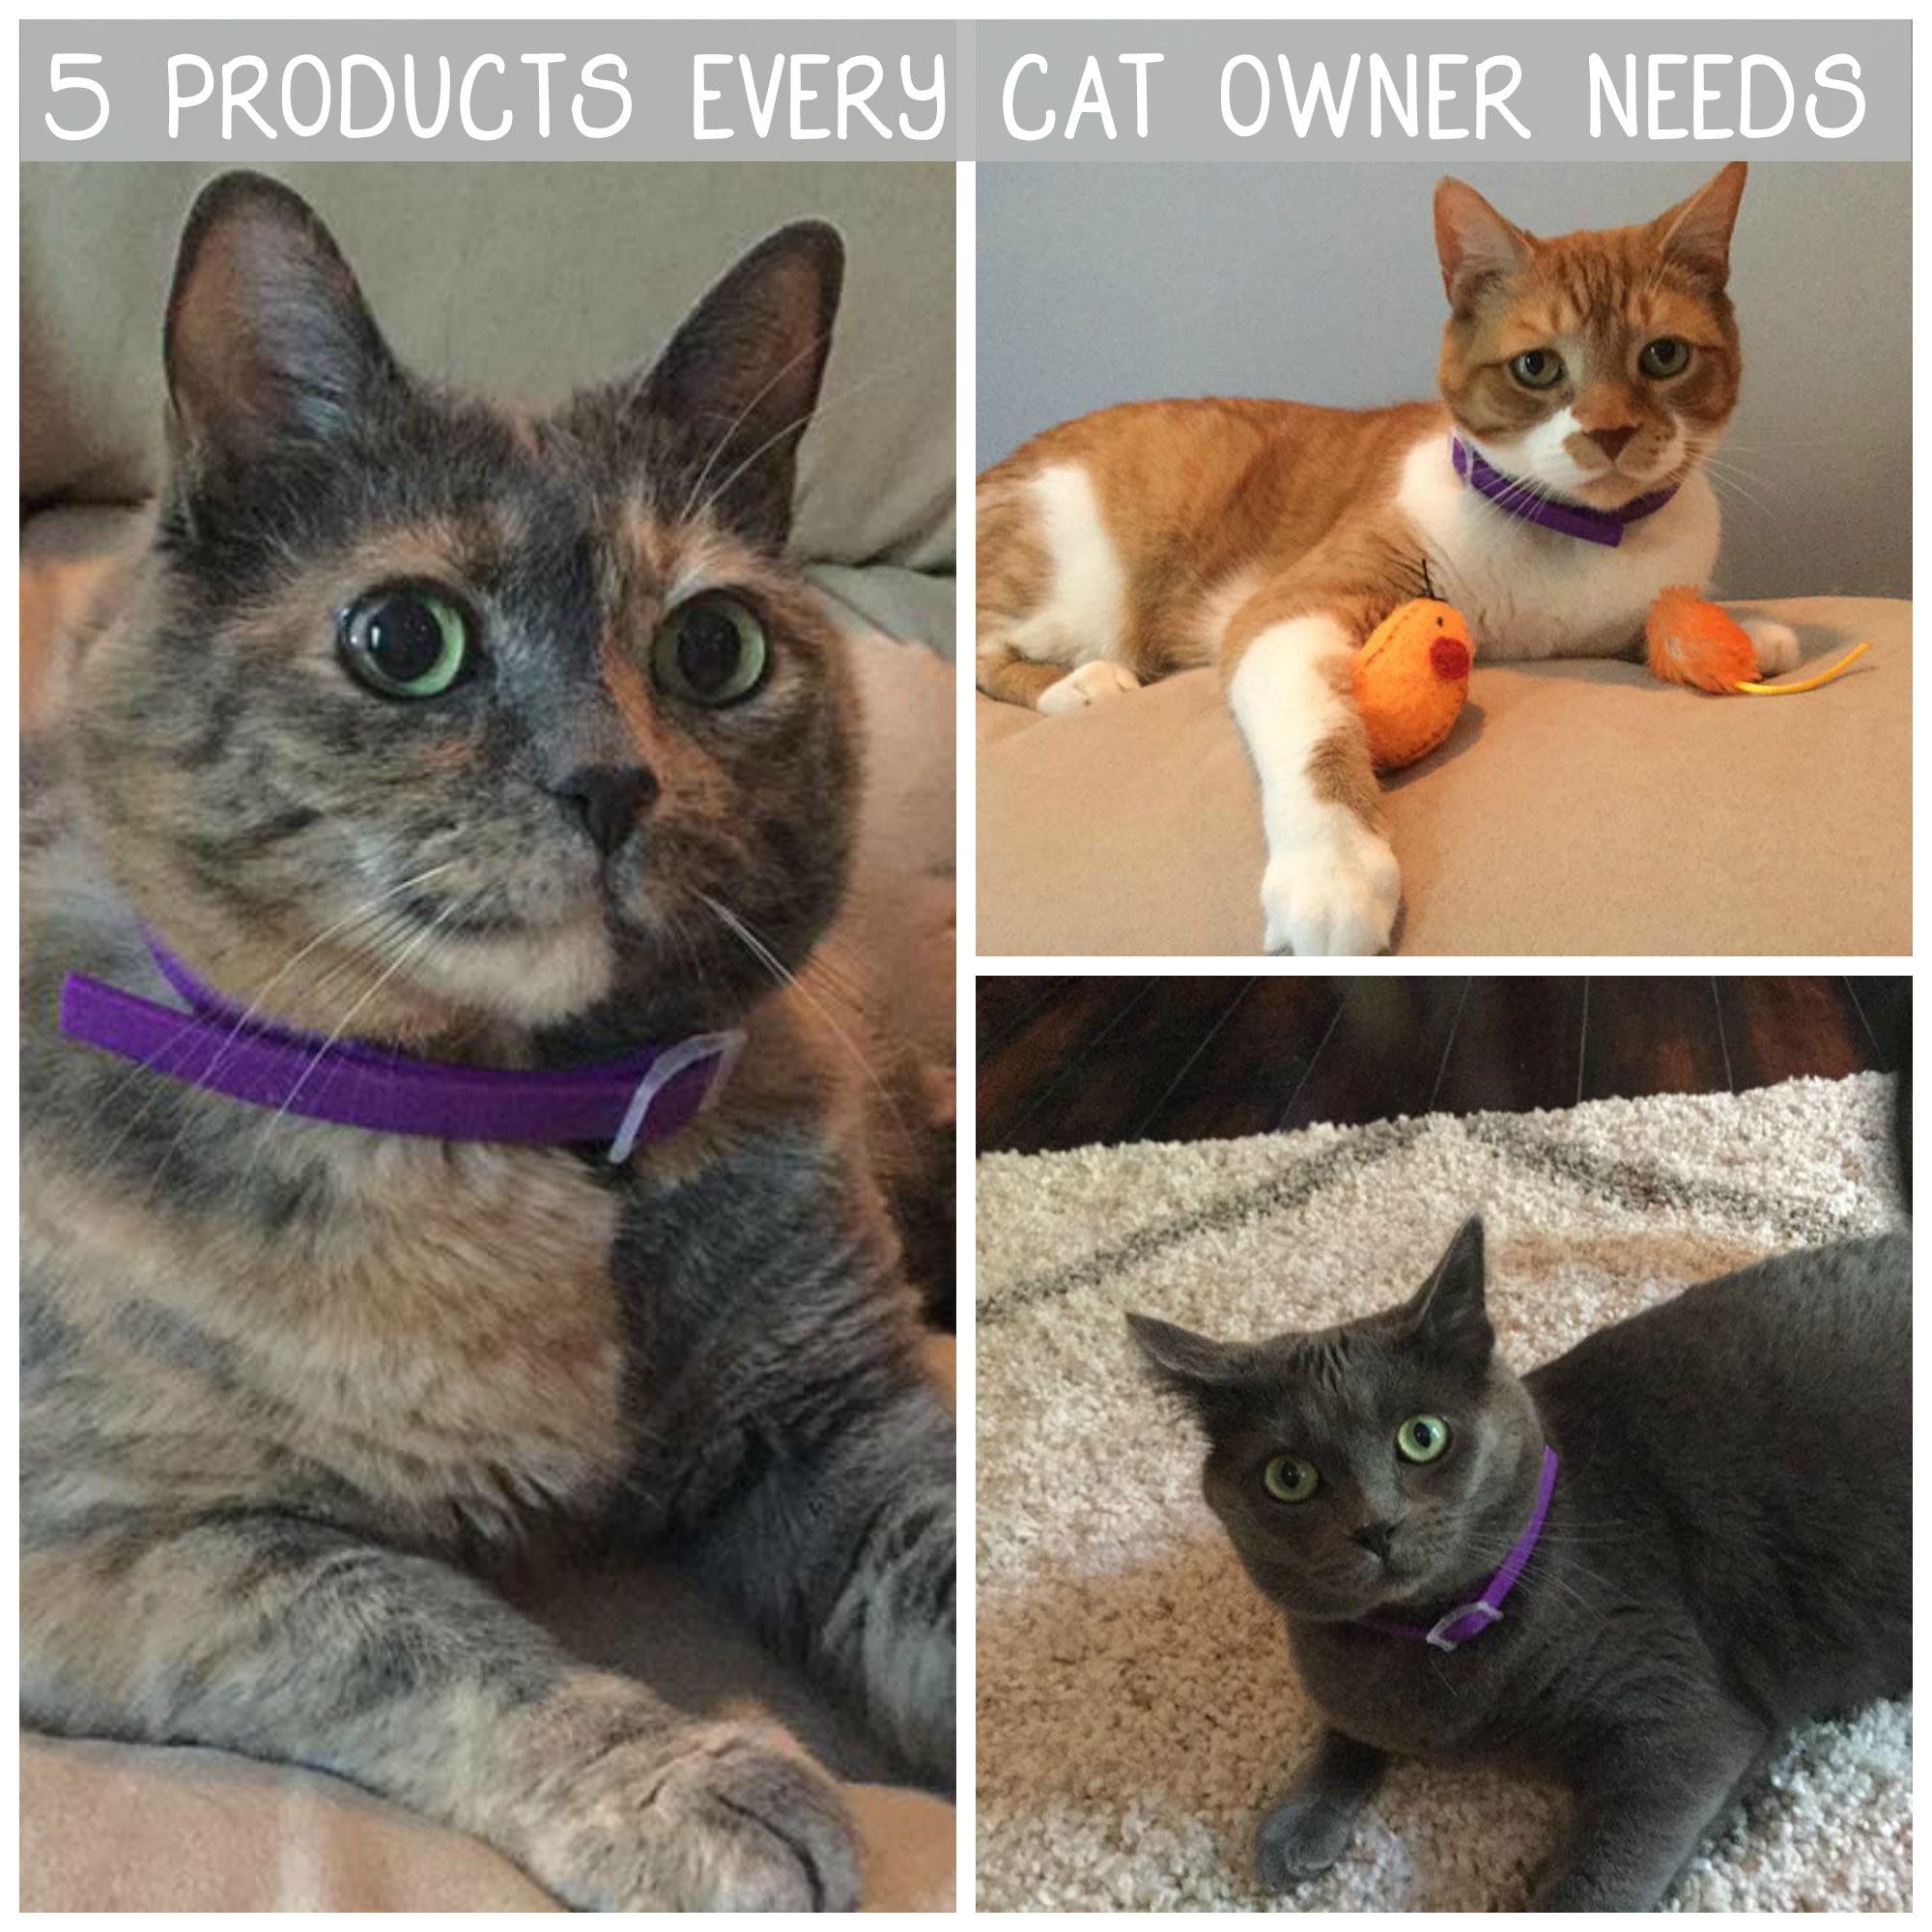 5-Products-Every-Cat-Owner-Needs